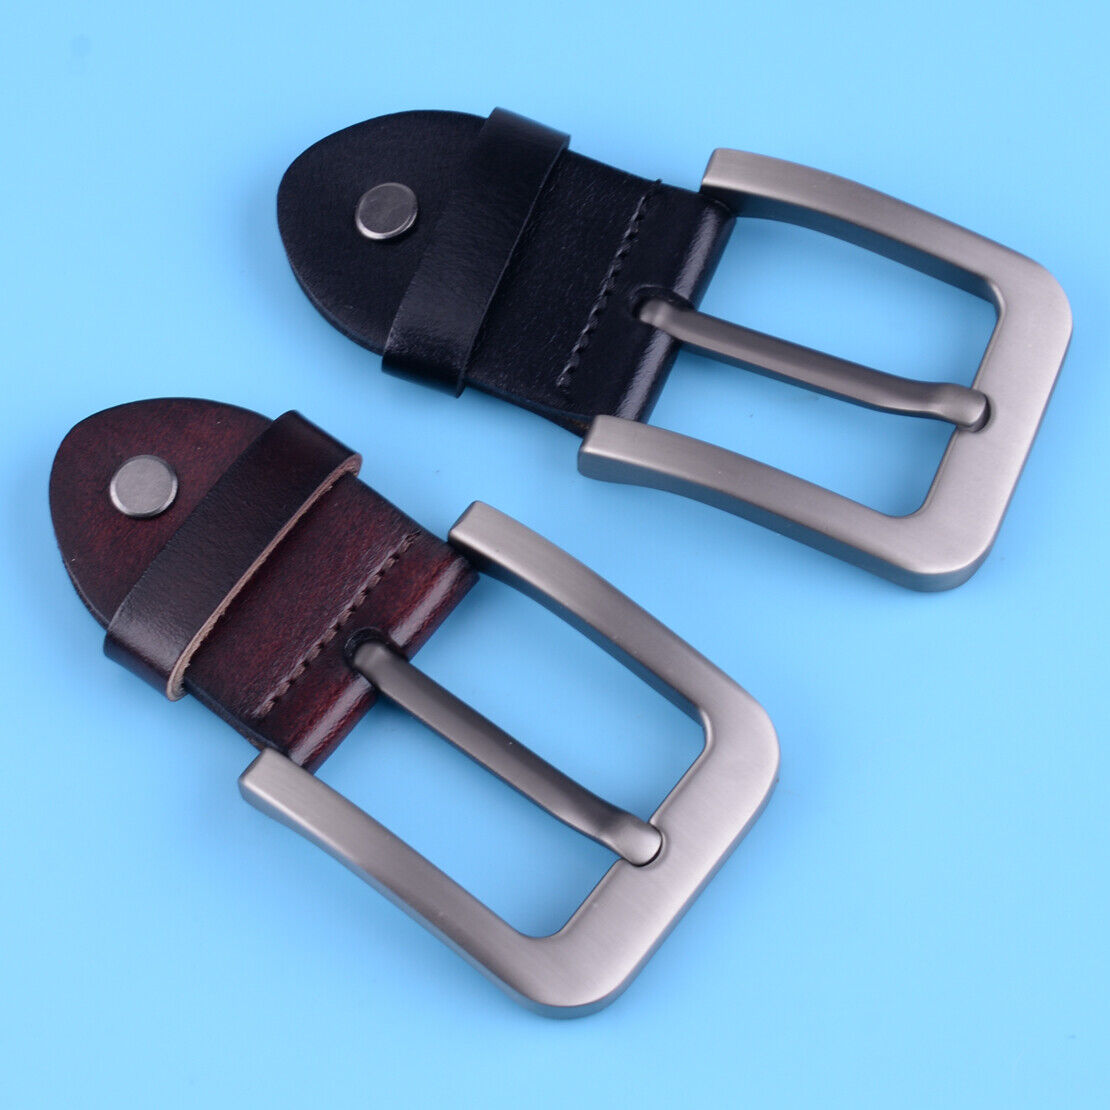 1Pcs Fashion Classic Alloy Men's Belt Buckle Pin fit for Wide 1.5